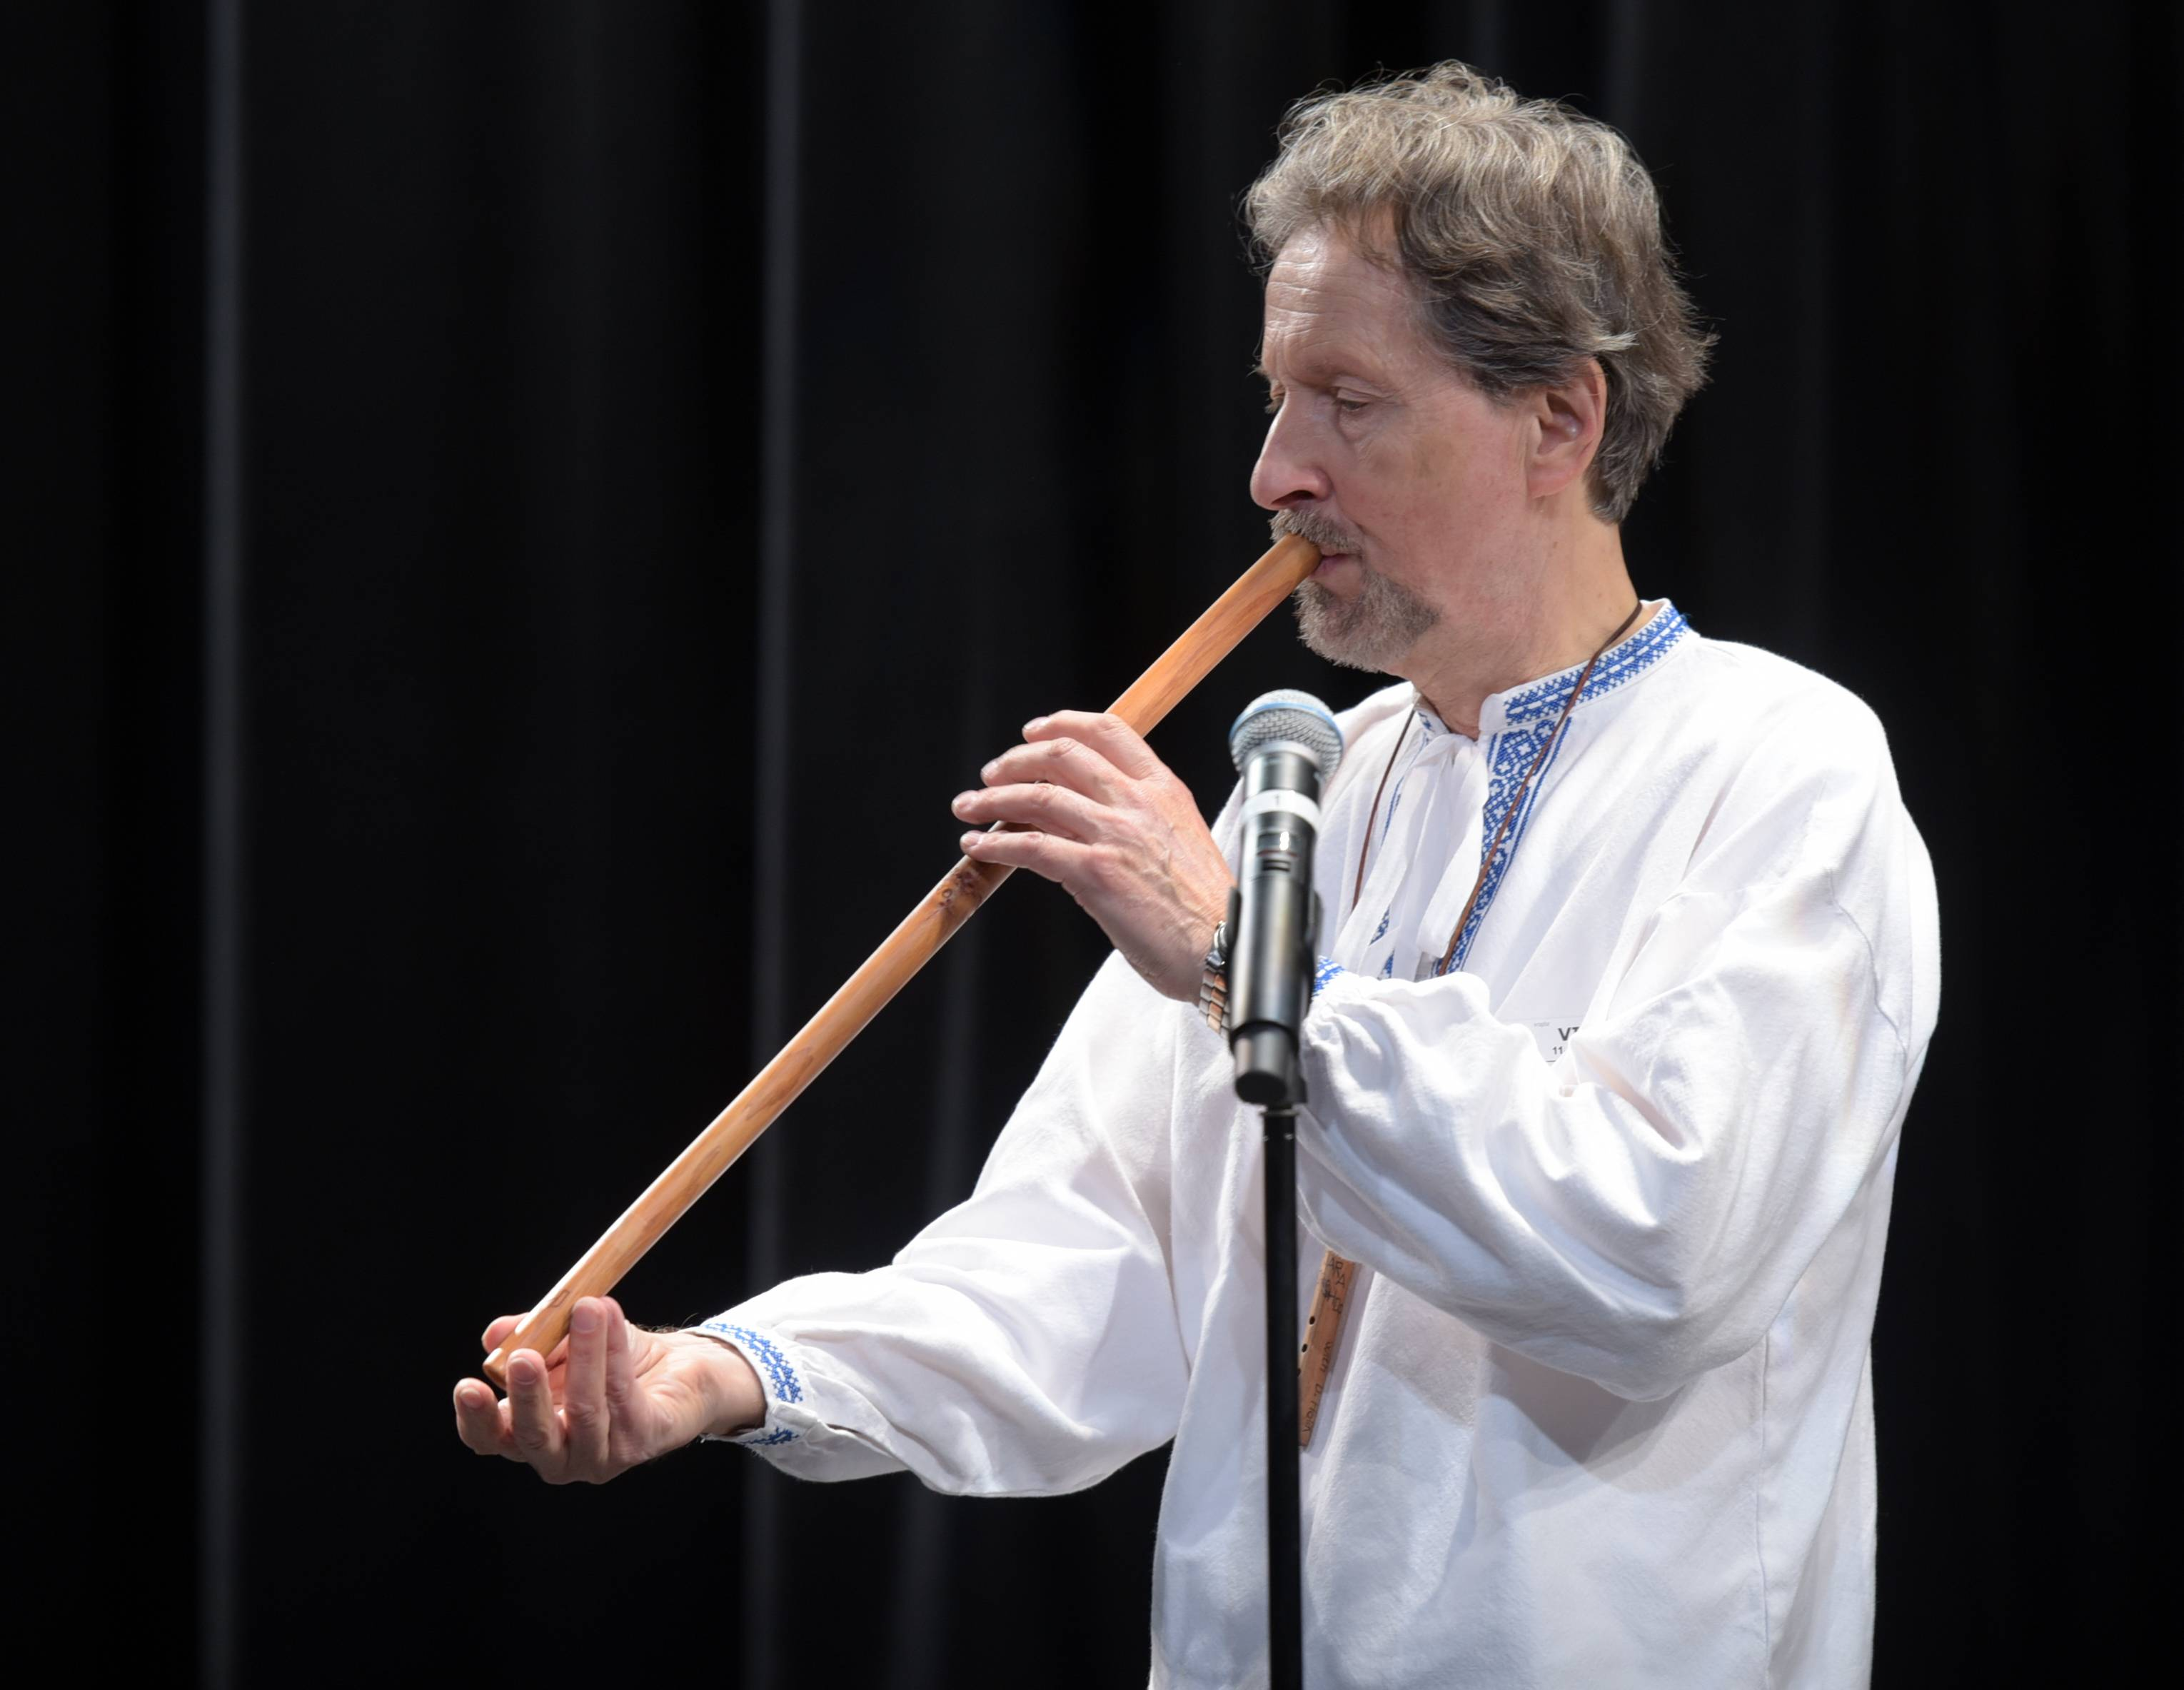 Bob Rychlik, a Slovakian folk musician, performs Wednesday for music students at Naperville North High School. The concert was part of a visit arranged through the Naperville Sister Cities commission and its partnership with Nitra, Slovakia.